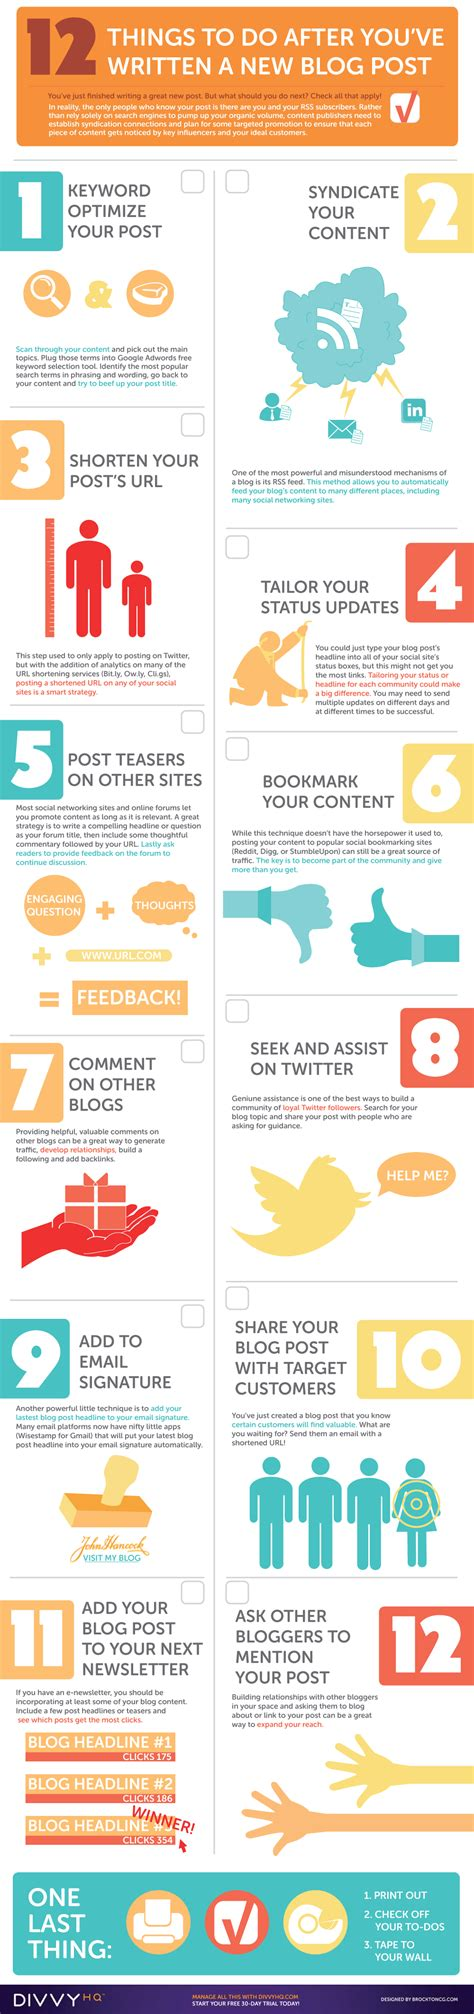 blogger needed your blog post promotion checklist an infographic from